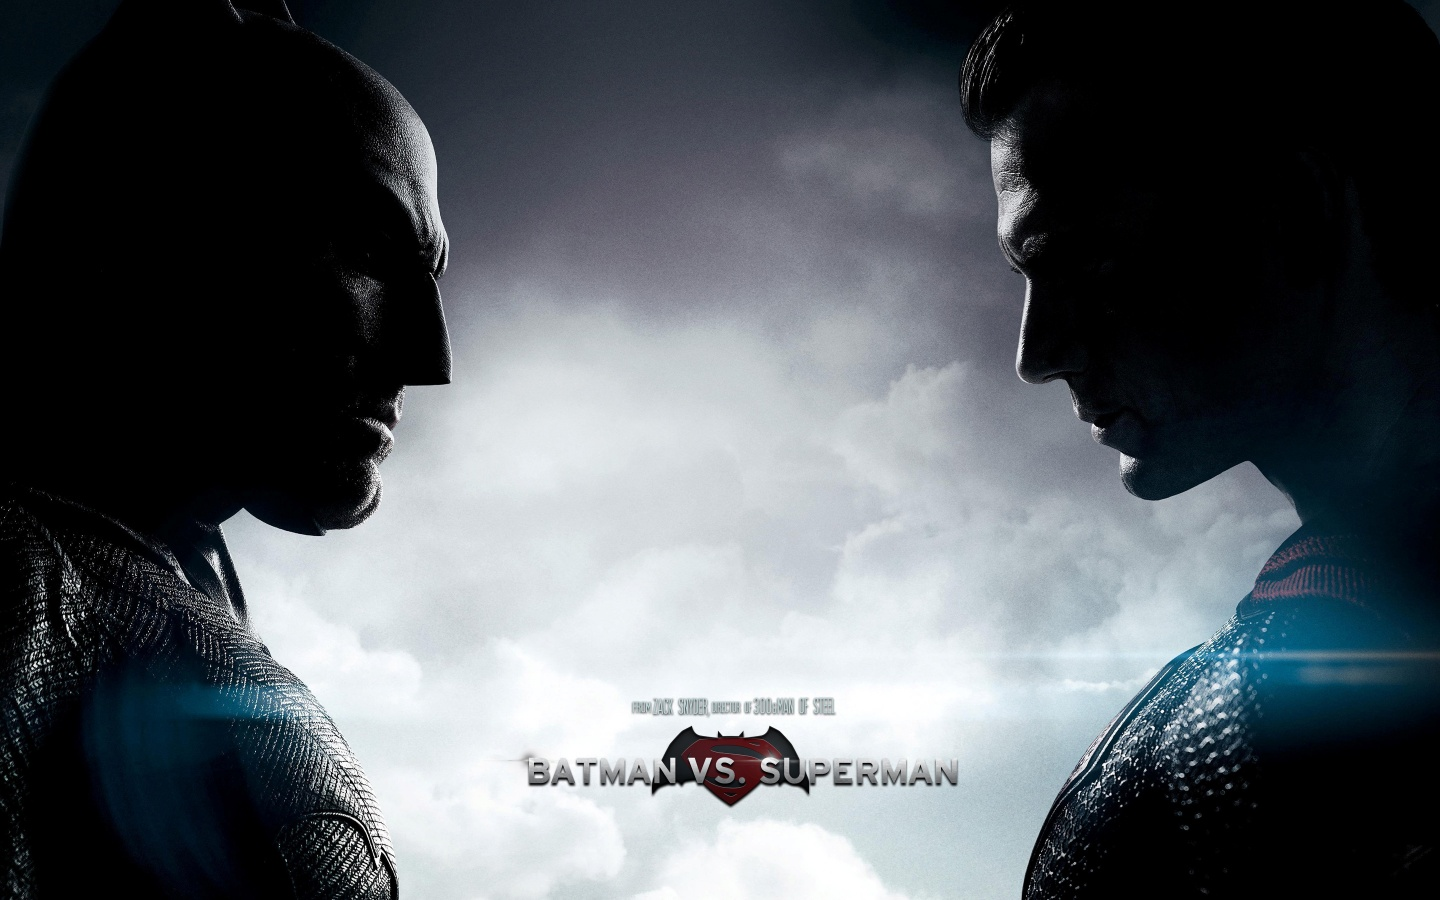 Batman v Superman Movie Wallpapers HD Wallpapers 1440x900